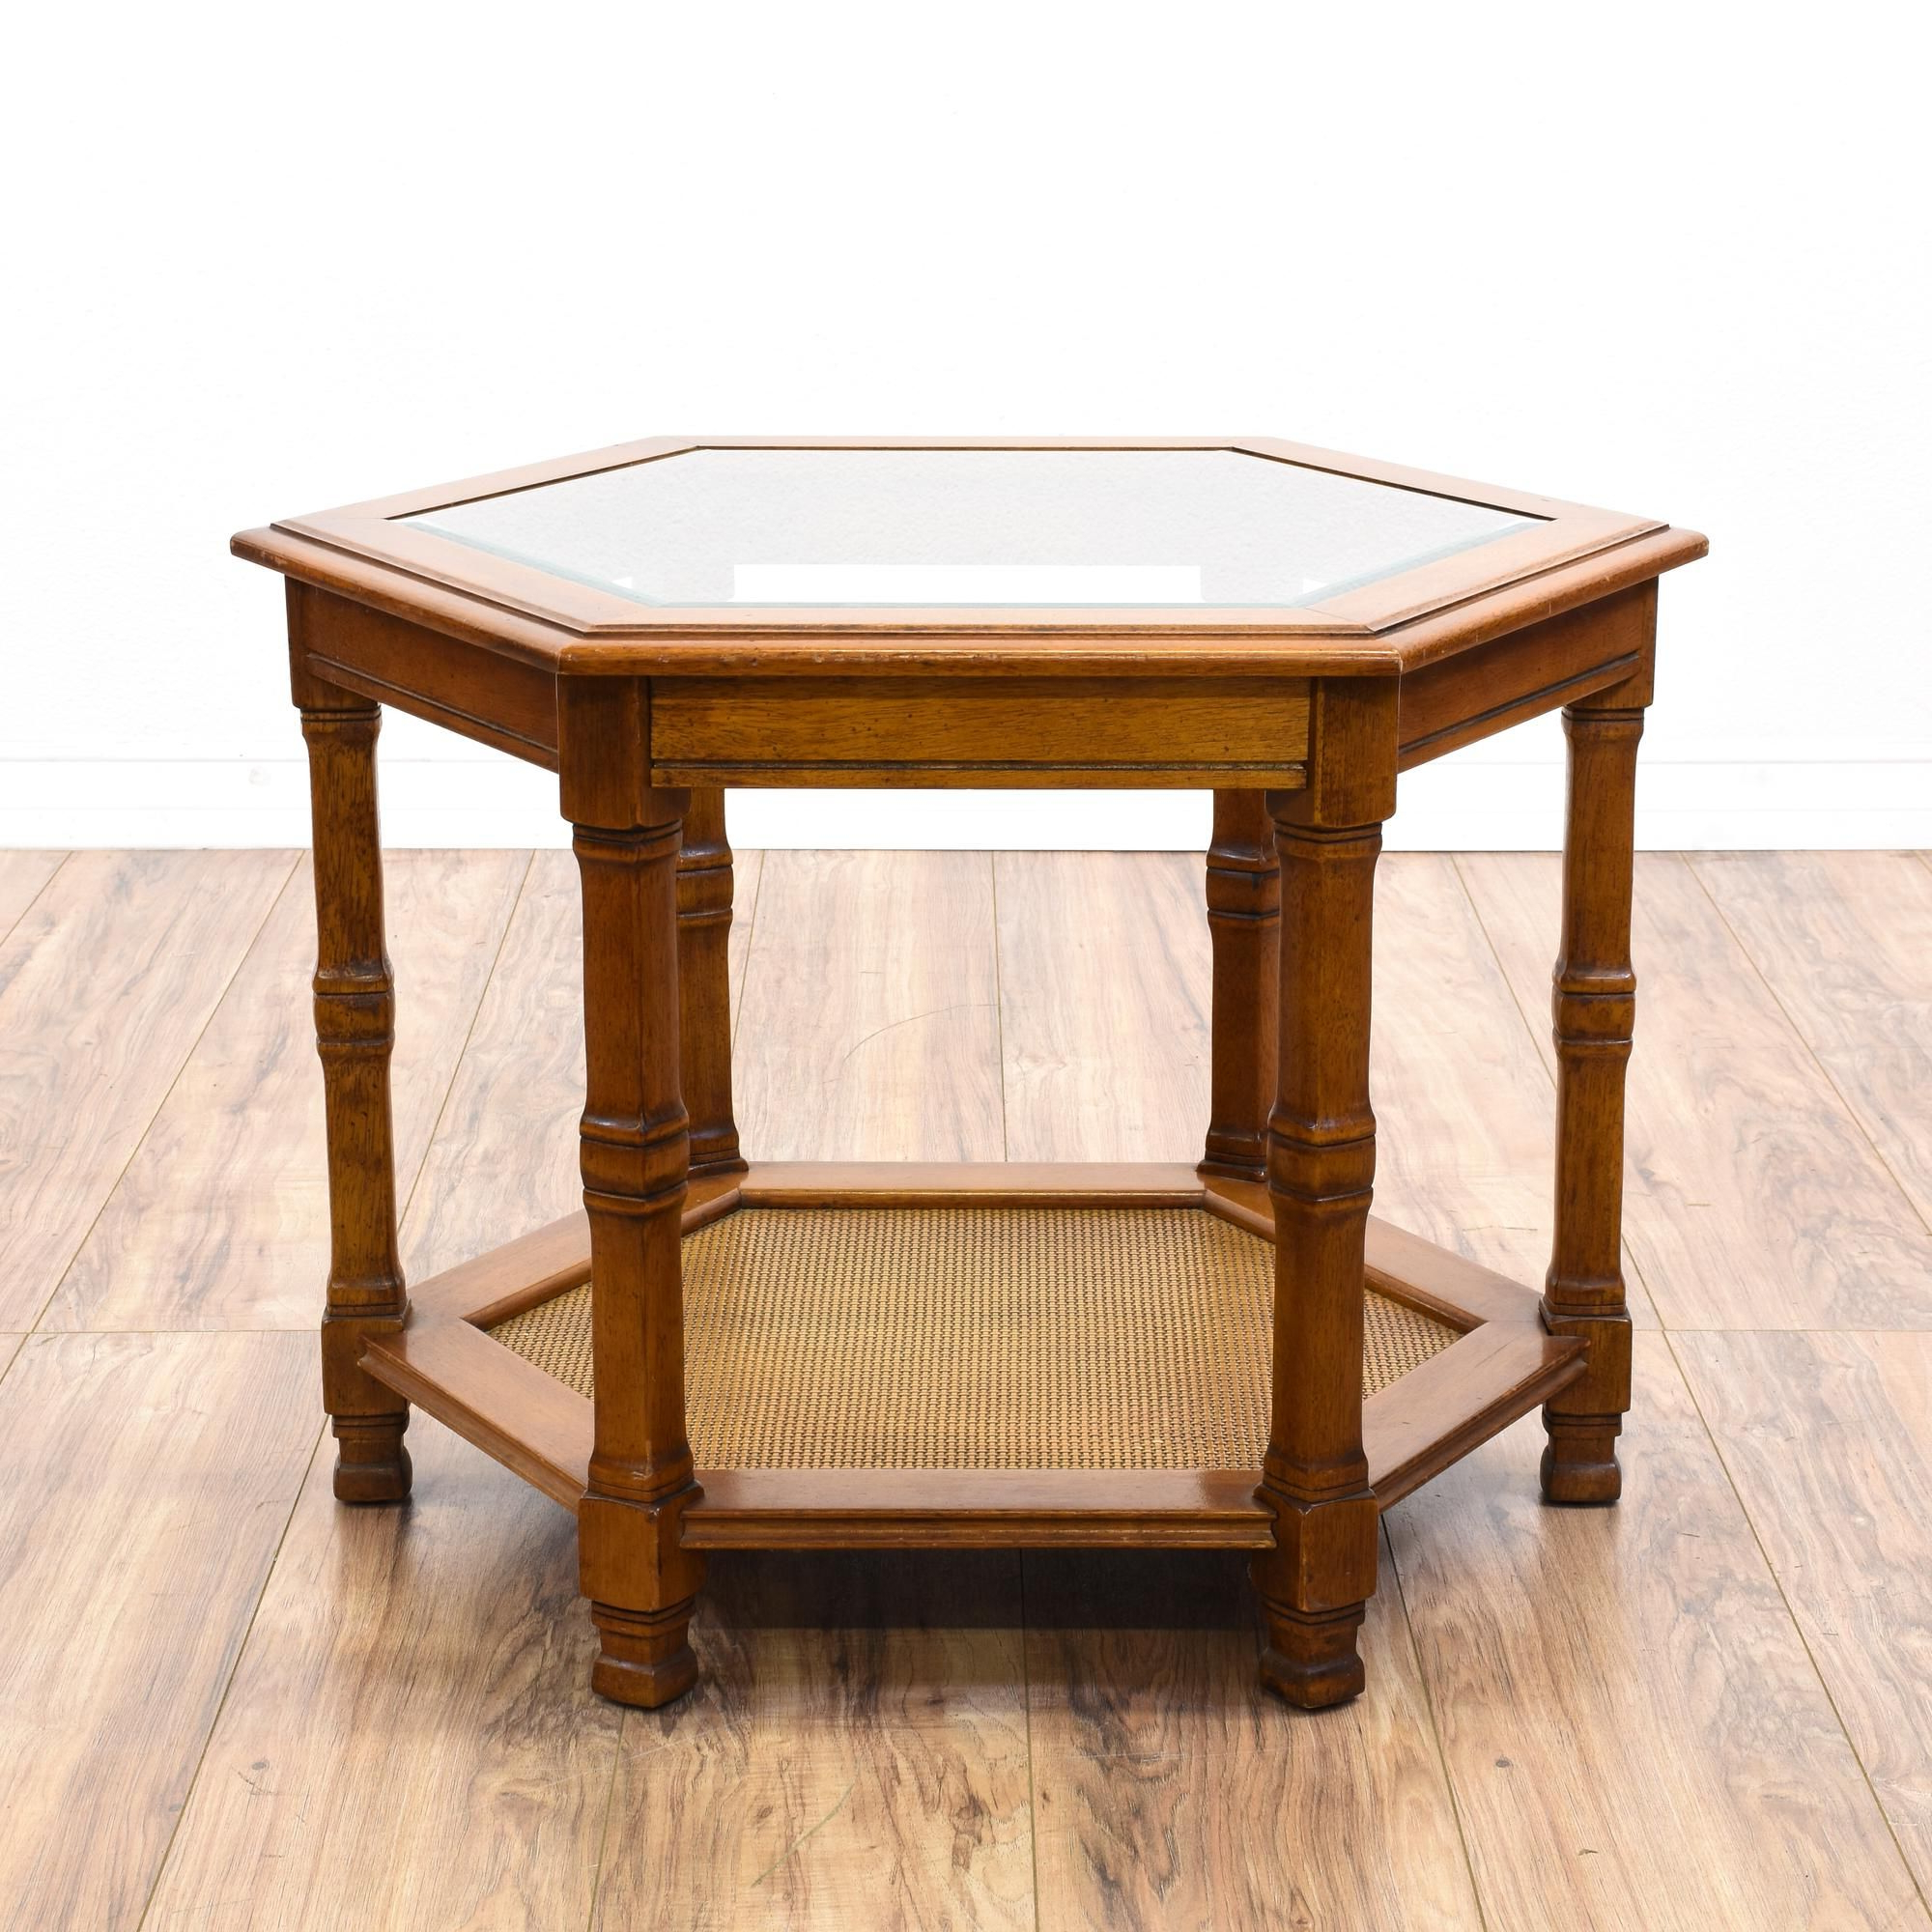 This Hexagon End Table Is Featured In A Solid Wood With A Intended For Solid And Composite Wood Buffets In Cappuccino Finish (View 19 of 20)